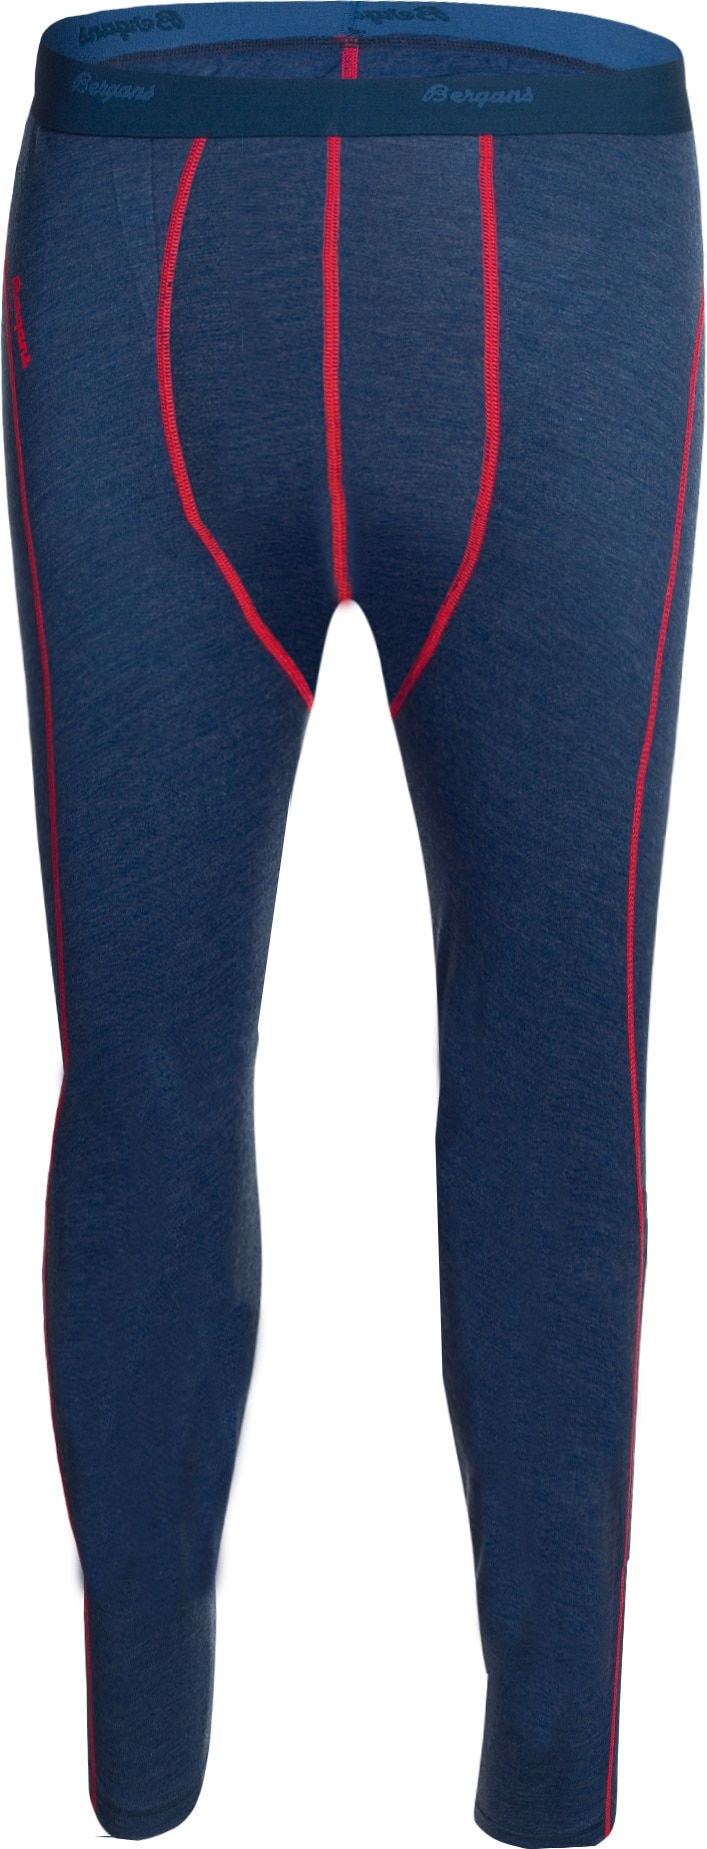 Fjellrapp Tights